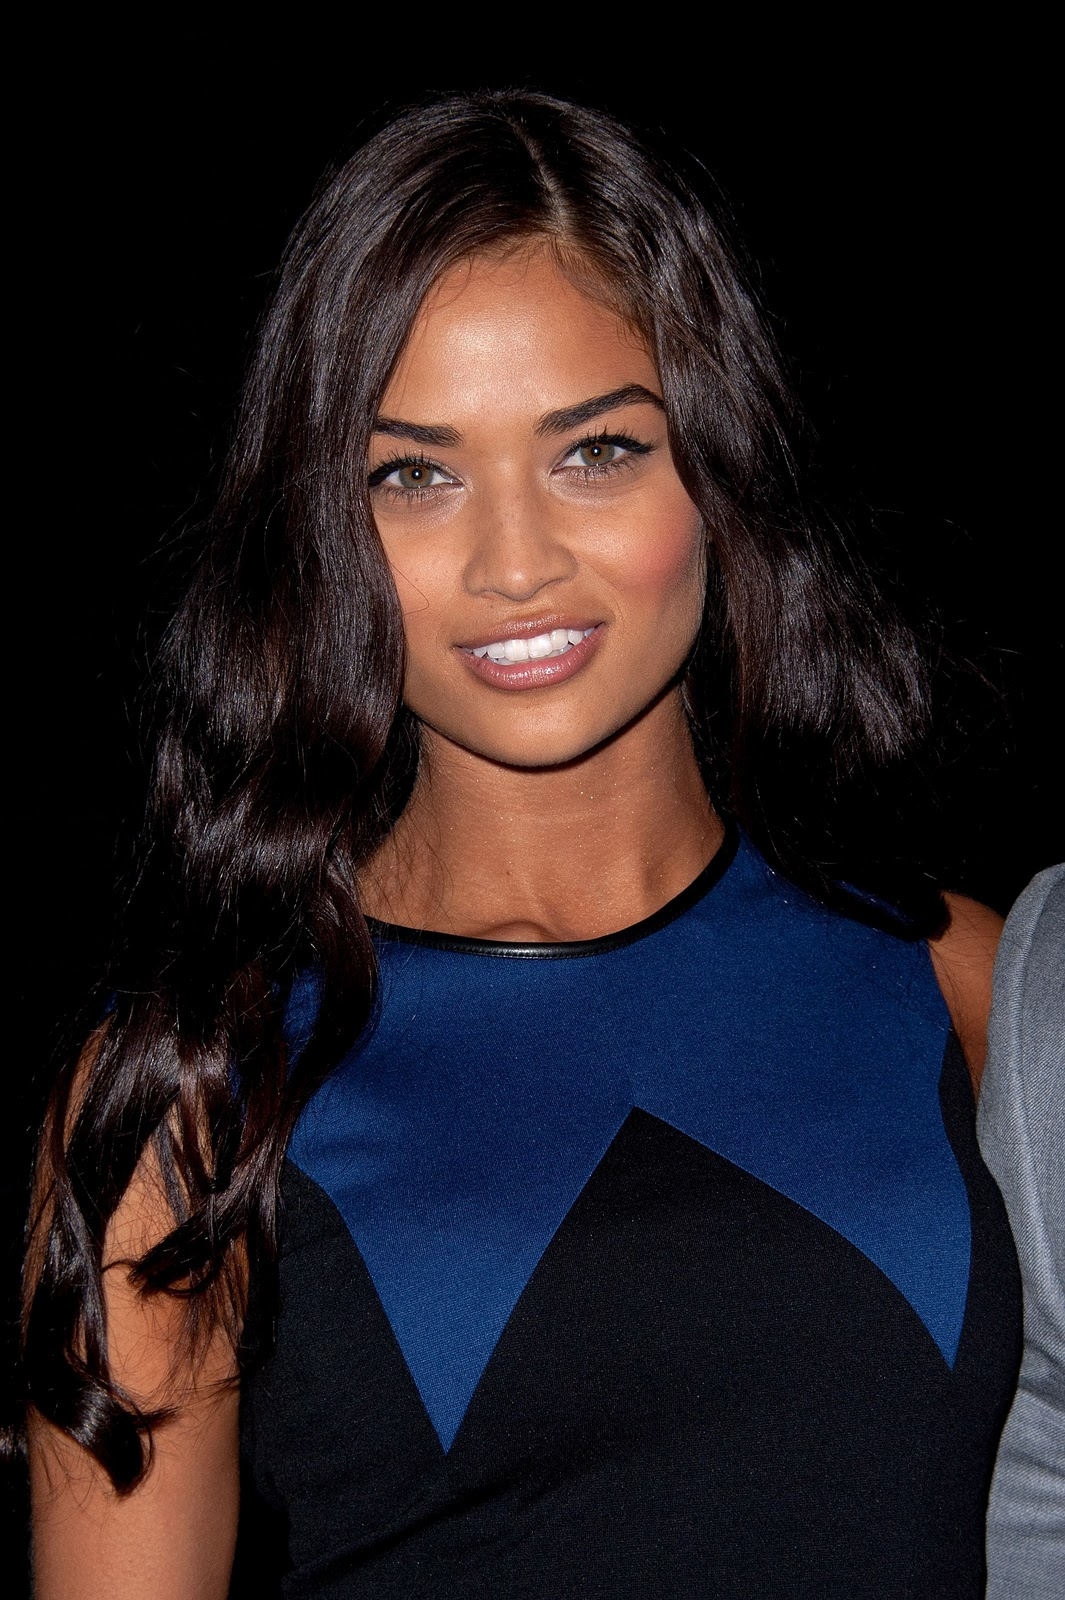 a35be0703d Shanina Shaik  Victoria s Secret Fashion Show 2011 AFTERPARTY HQ. They look  great together and I love the close up shot of her.